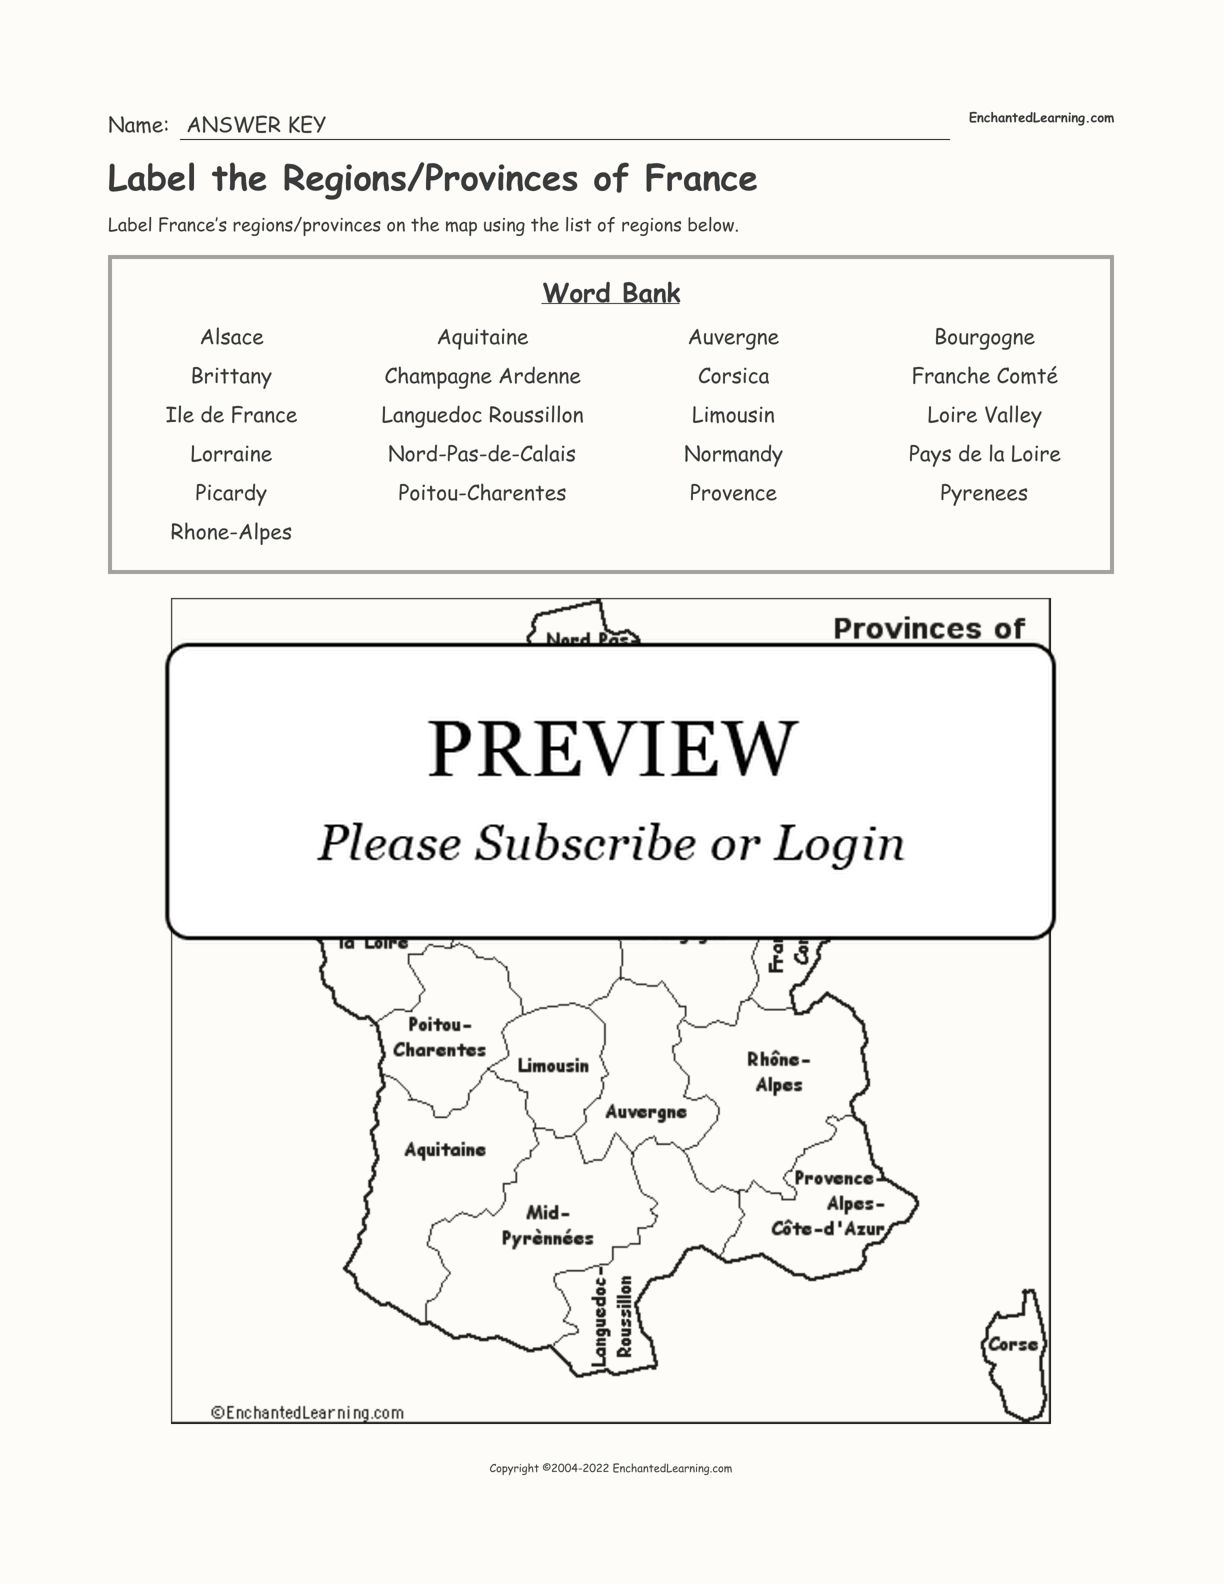 Label the Regions/Provinces of France interactive worksheet page 2